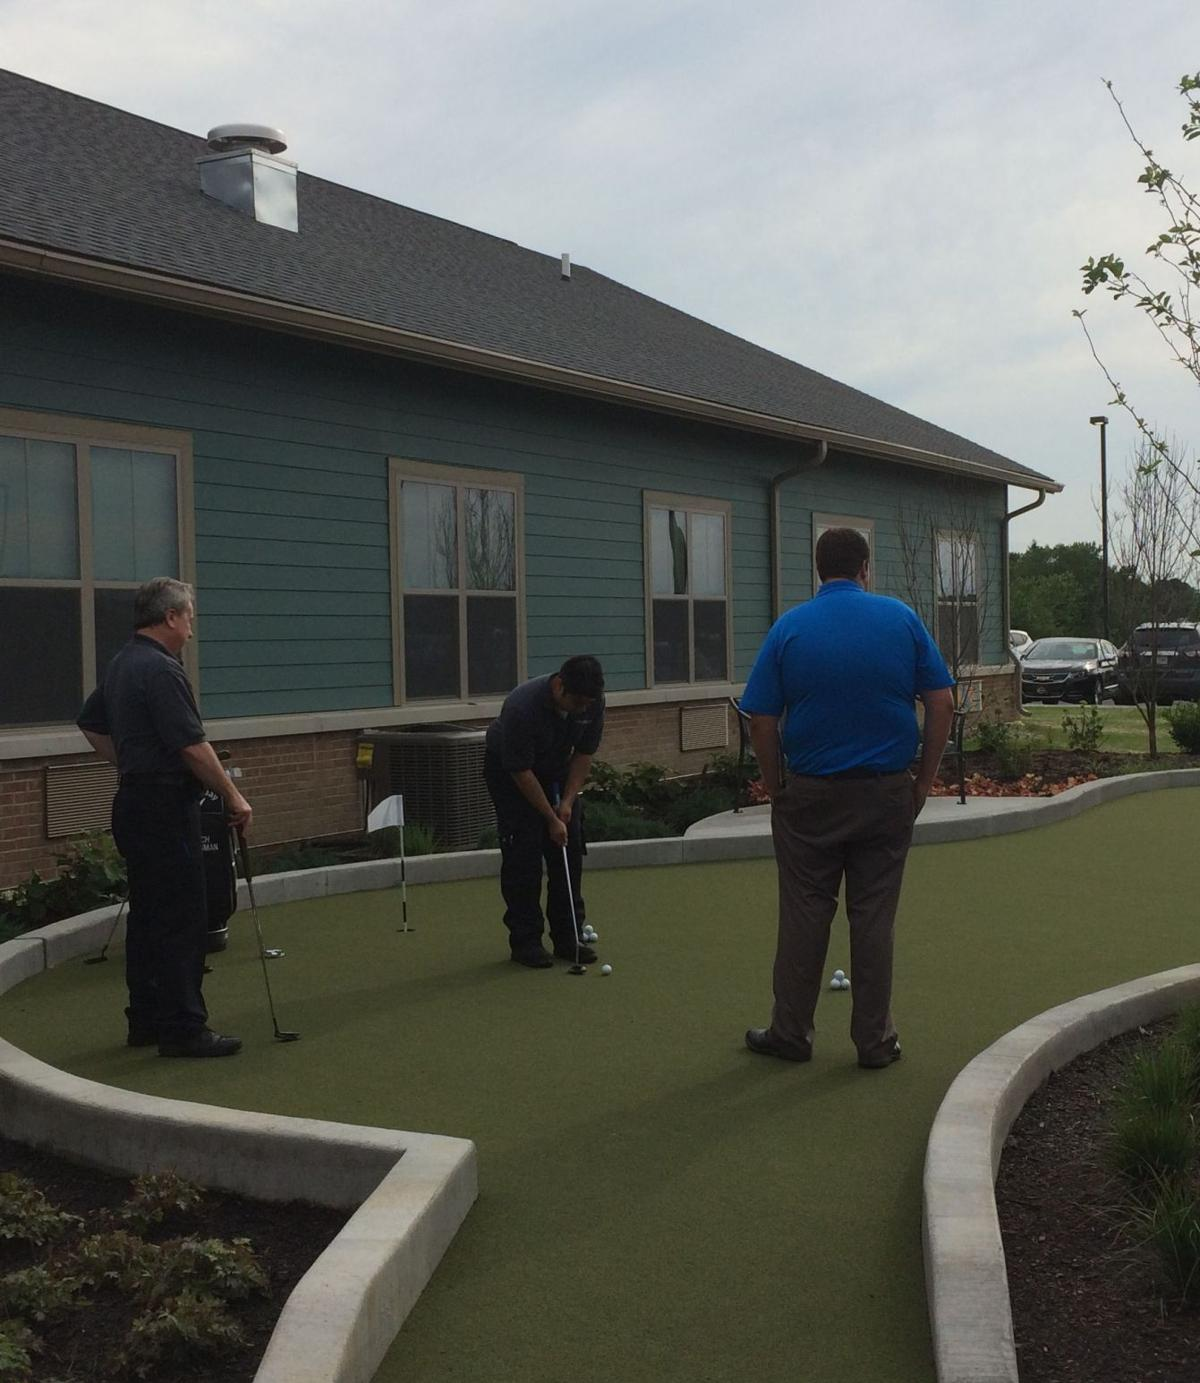 Indiana lake county dyer - Symphony Opens First Senior Living Facility In Indiana